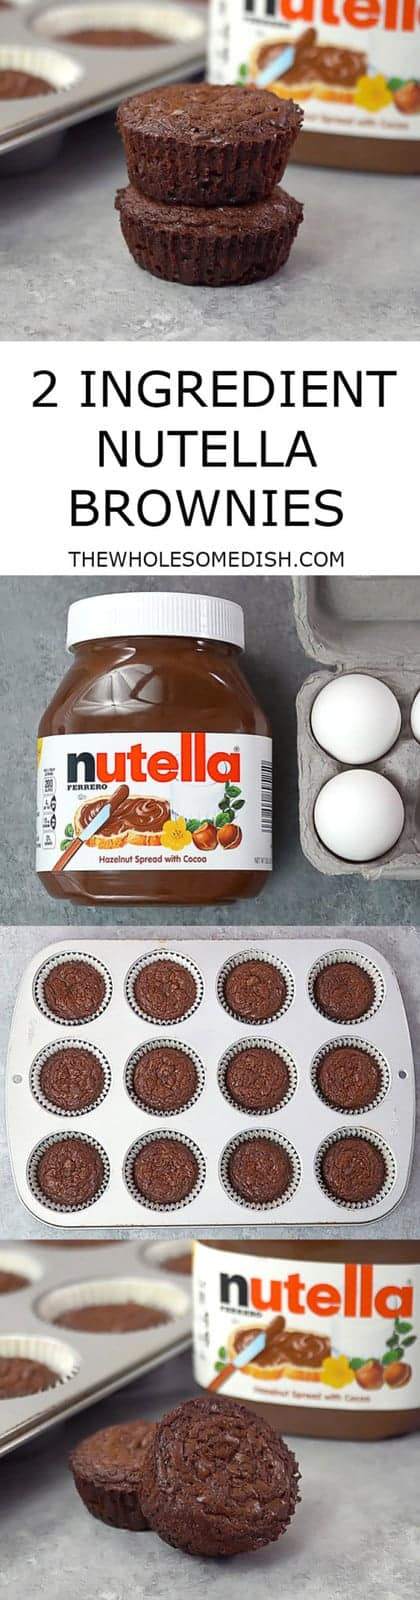 These 2 Ingredient Nutella Brownie Bites are the perfect chewy brownie consistency.  And, they can be made in the time it takes to preheat the oven.